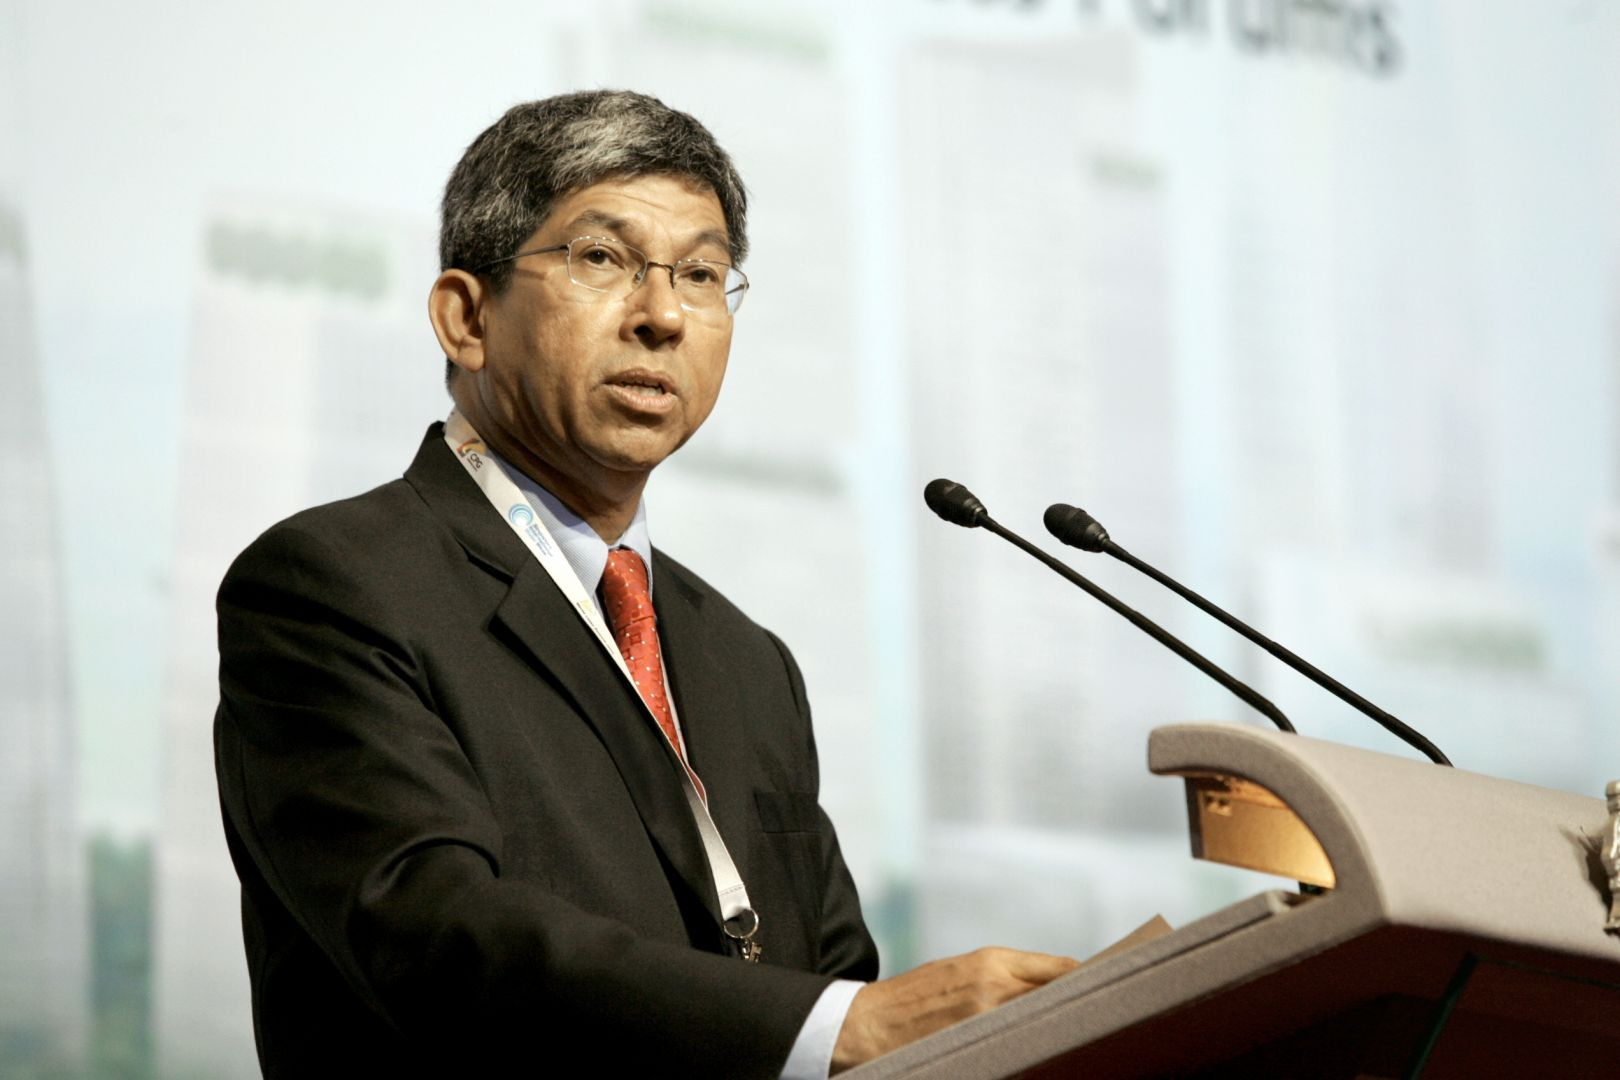 Minister for Communications and Information Dr Yaacob Ibrahim